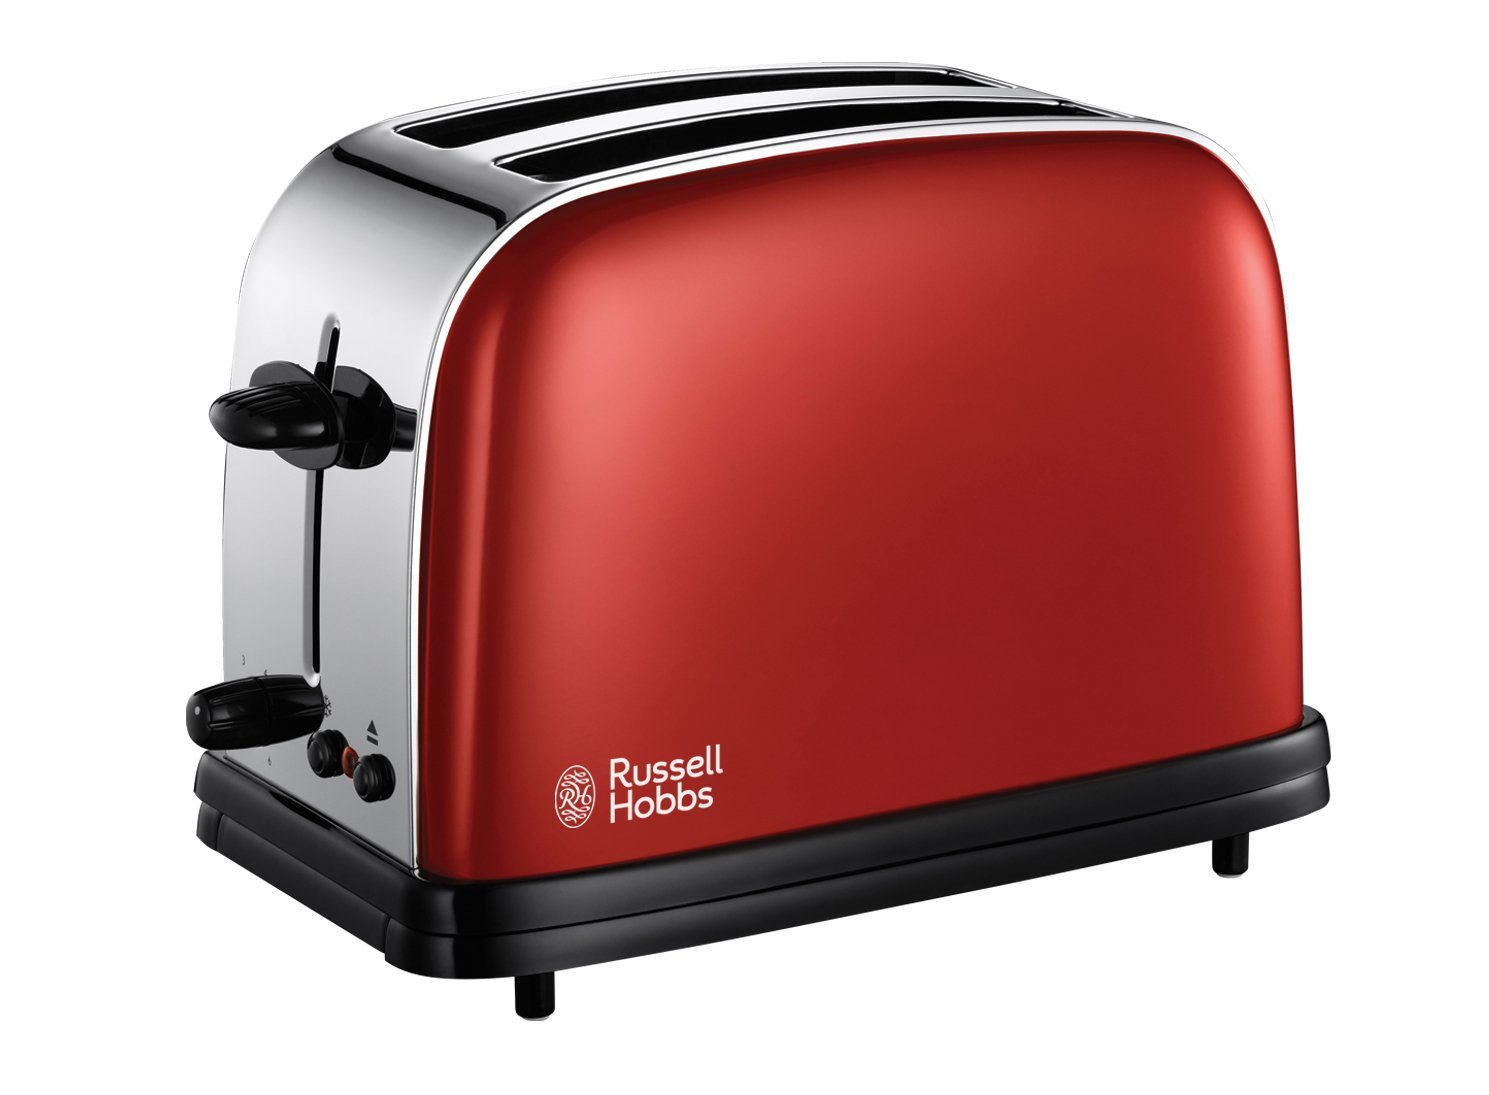 Russell Hobbs Colours Flame Red 18951-56